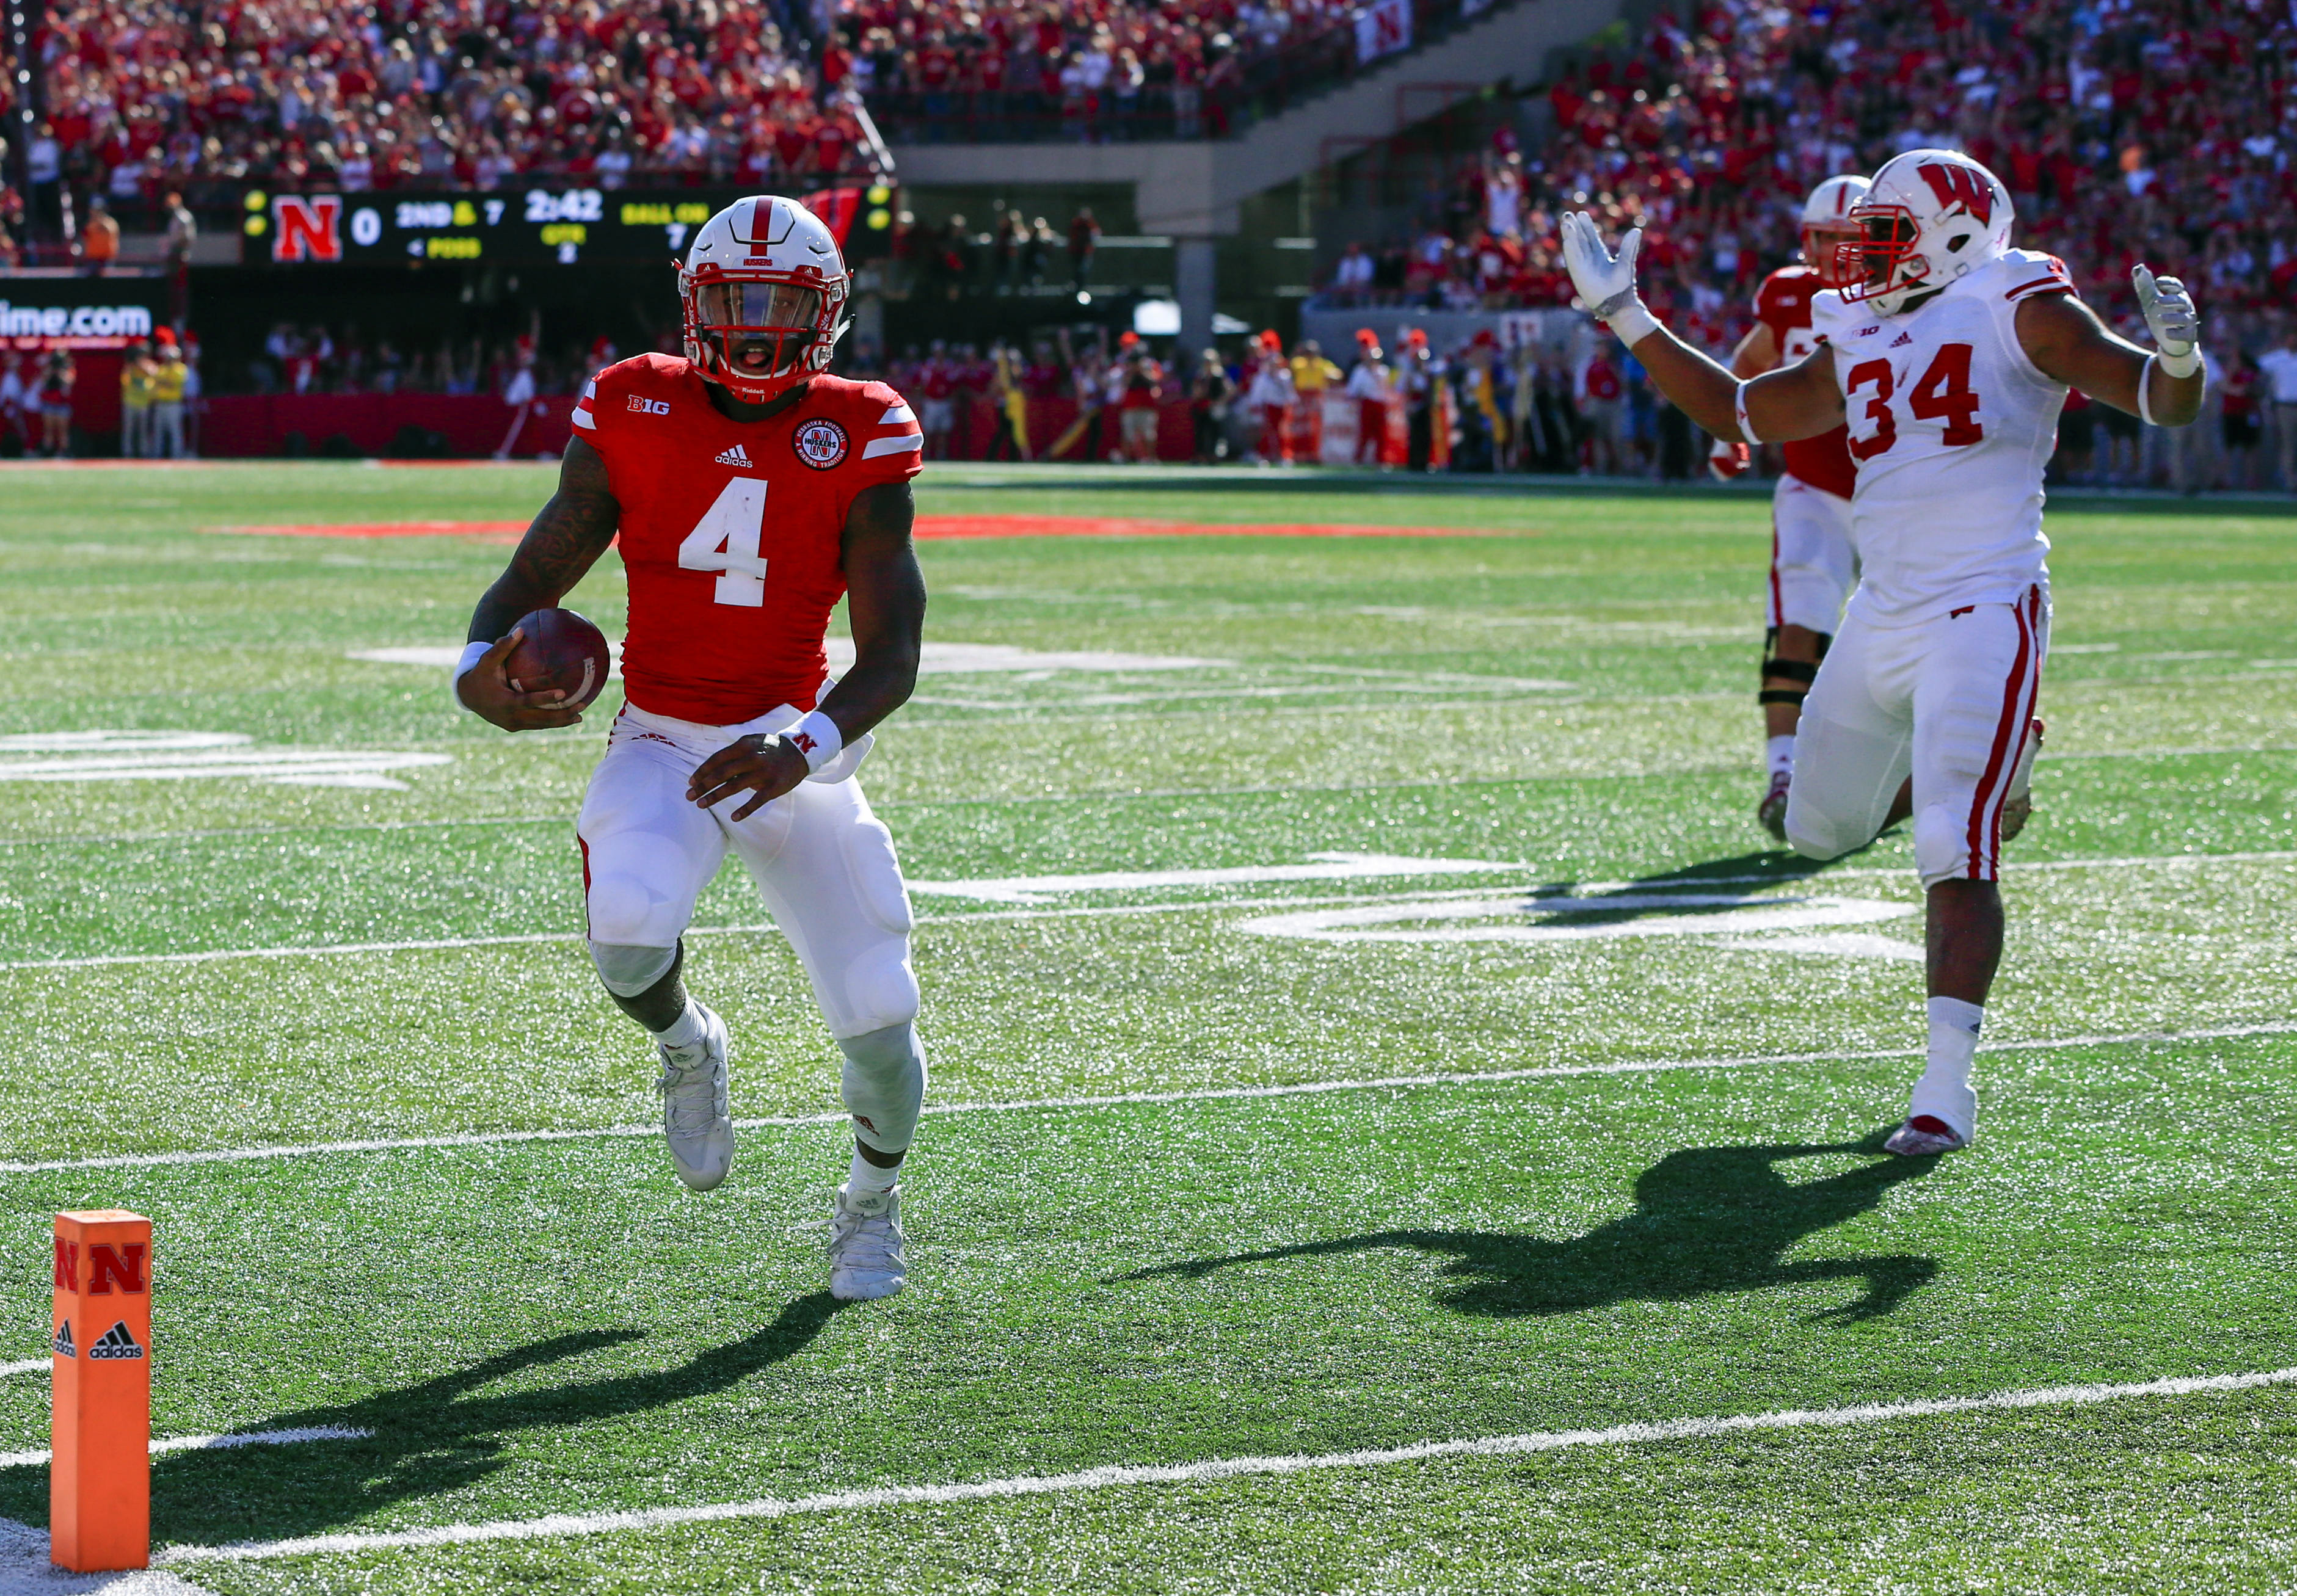 Nebraska quarterback Tommy Armstrong Jr. (4) runs for a touchdown ahead of Wisconsin defensive end Chikwe Obasih (34) during the first half of an NCAA college football game in Lincoln, Neb., Saturday, Oct. 10, 2015. (AP Photo/Nati Harnik)